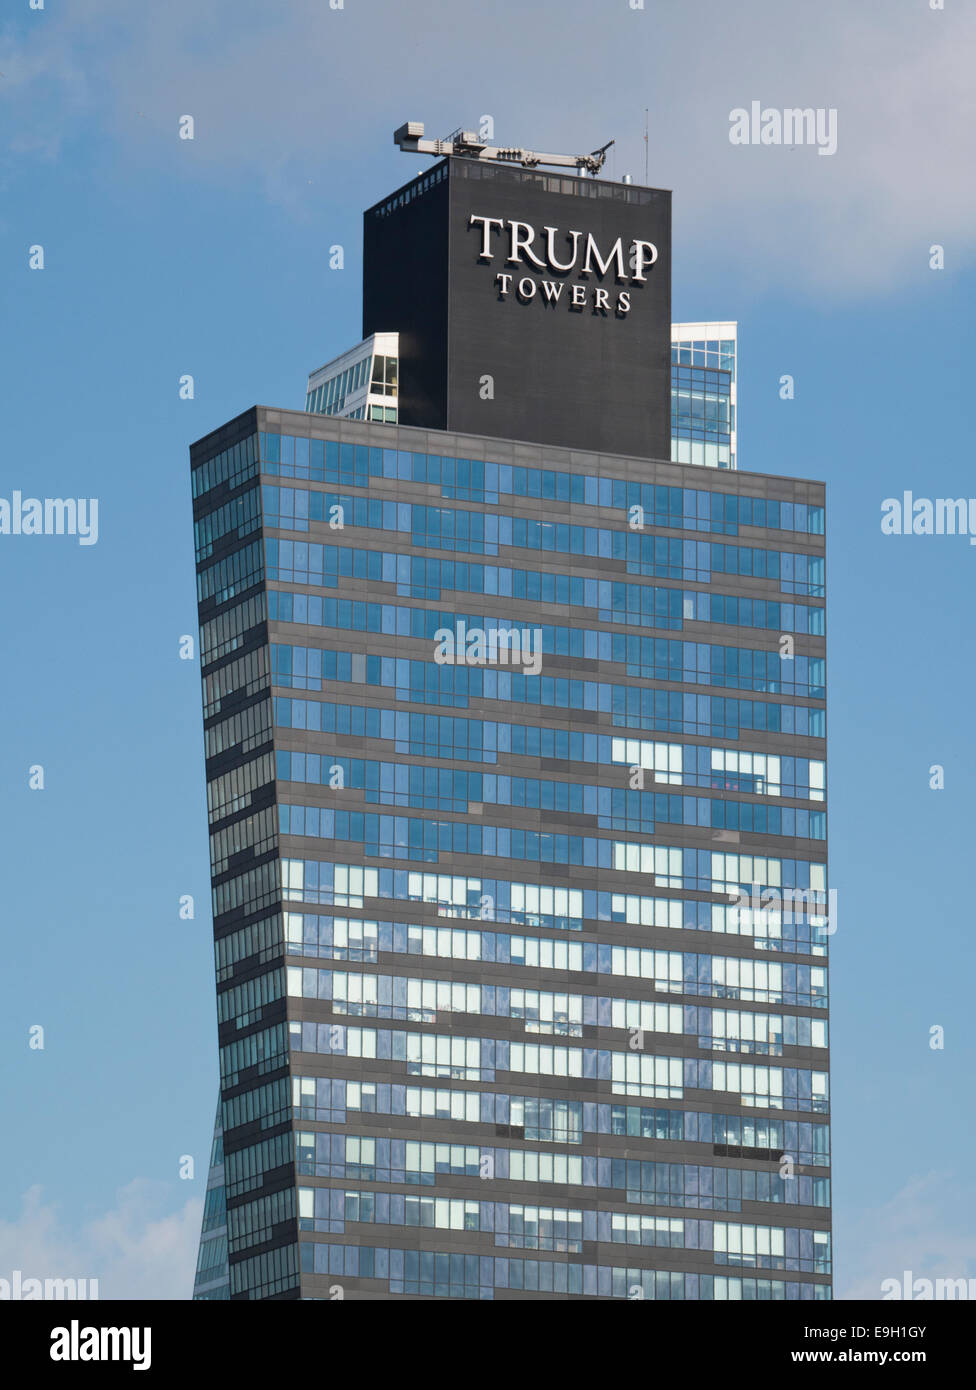 Trump Towers in Istanbul - Stock Image